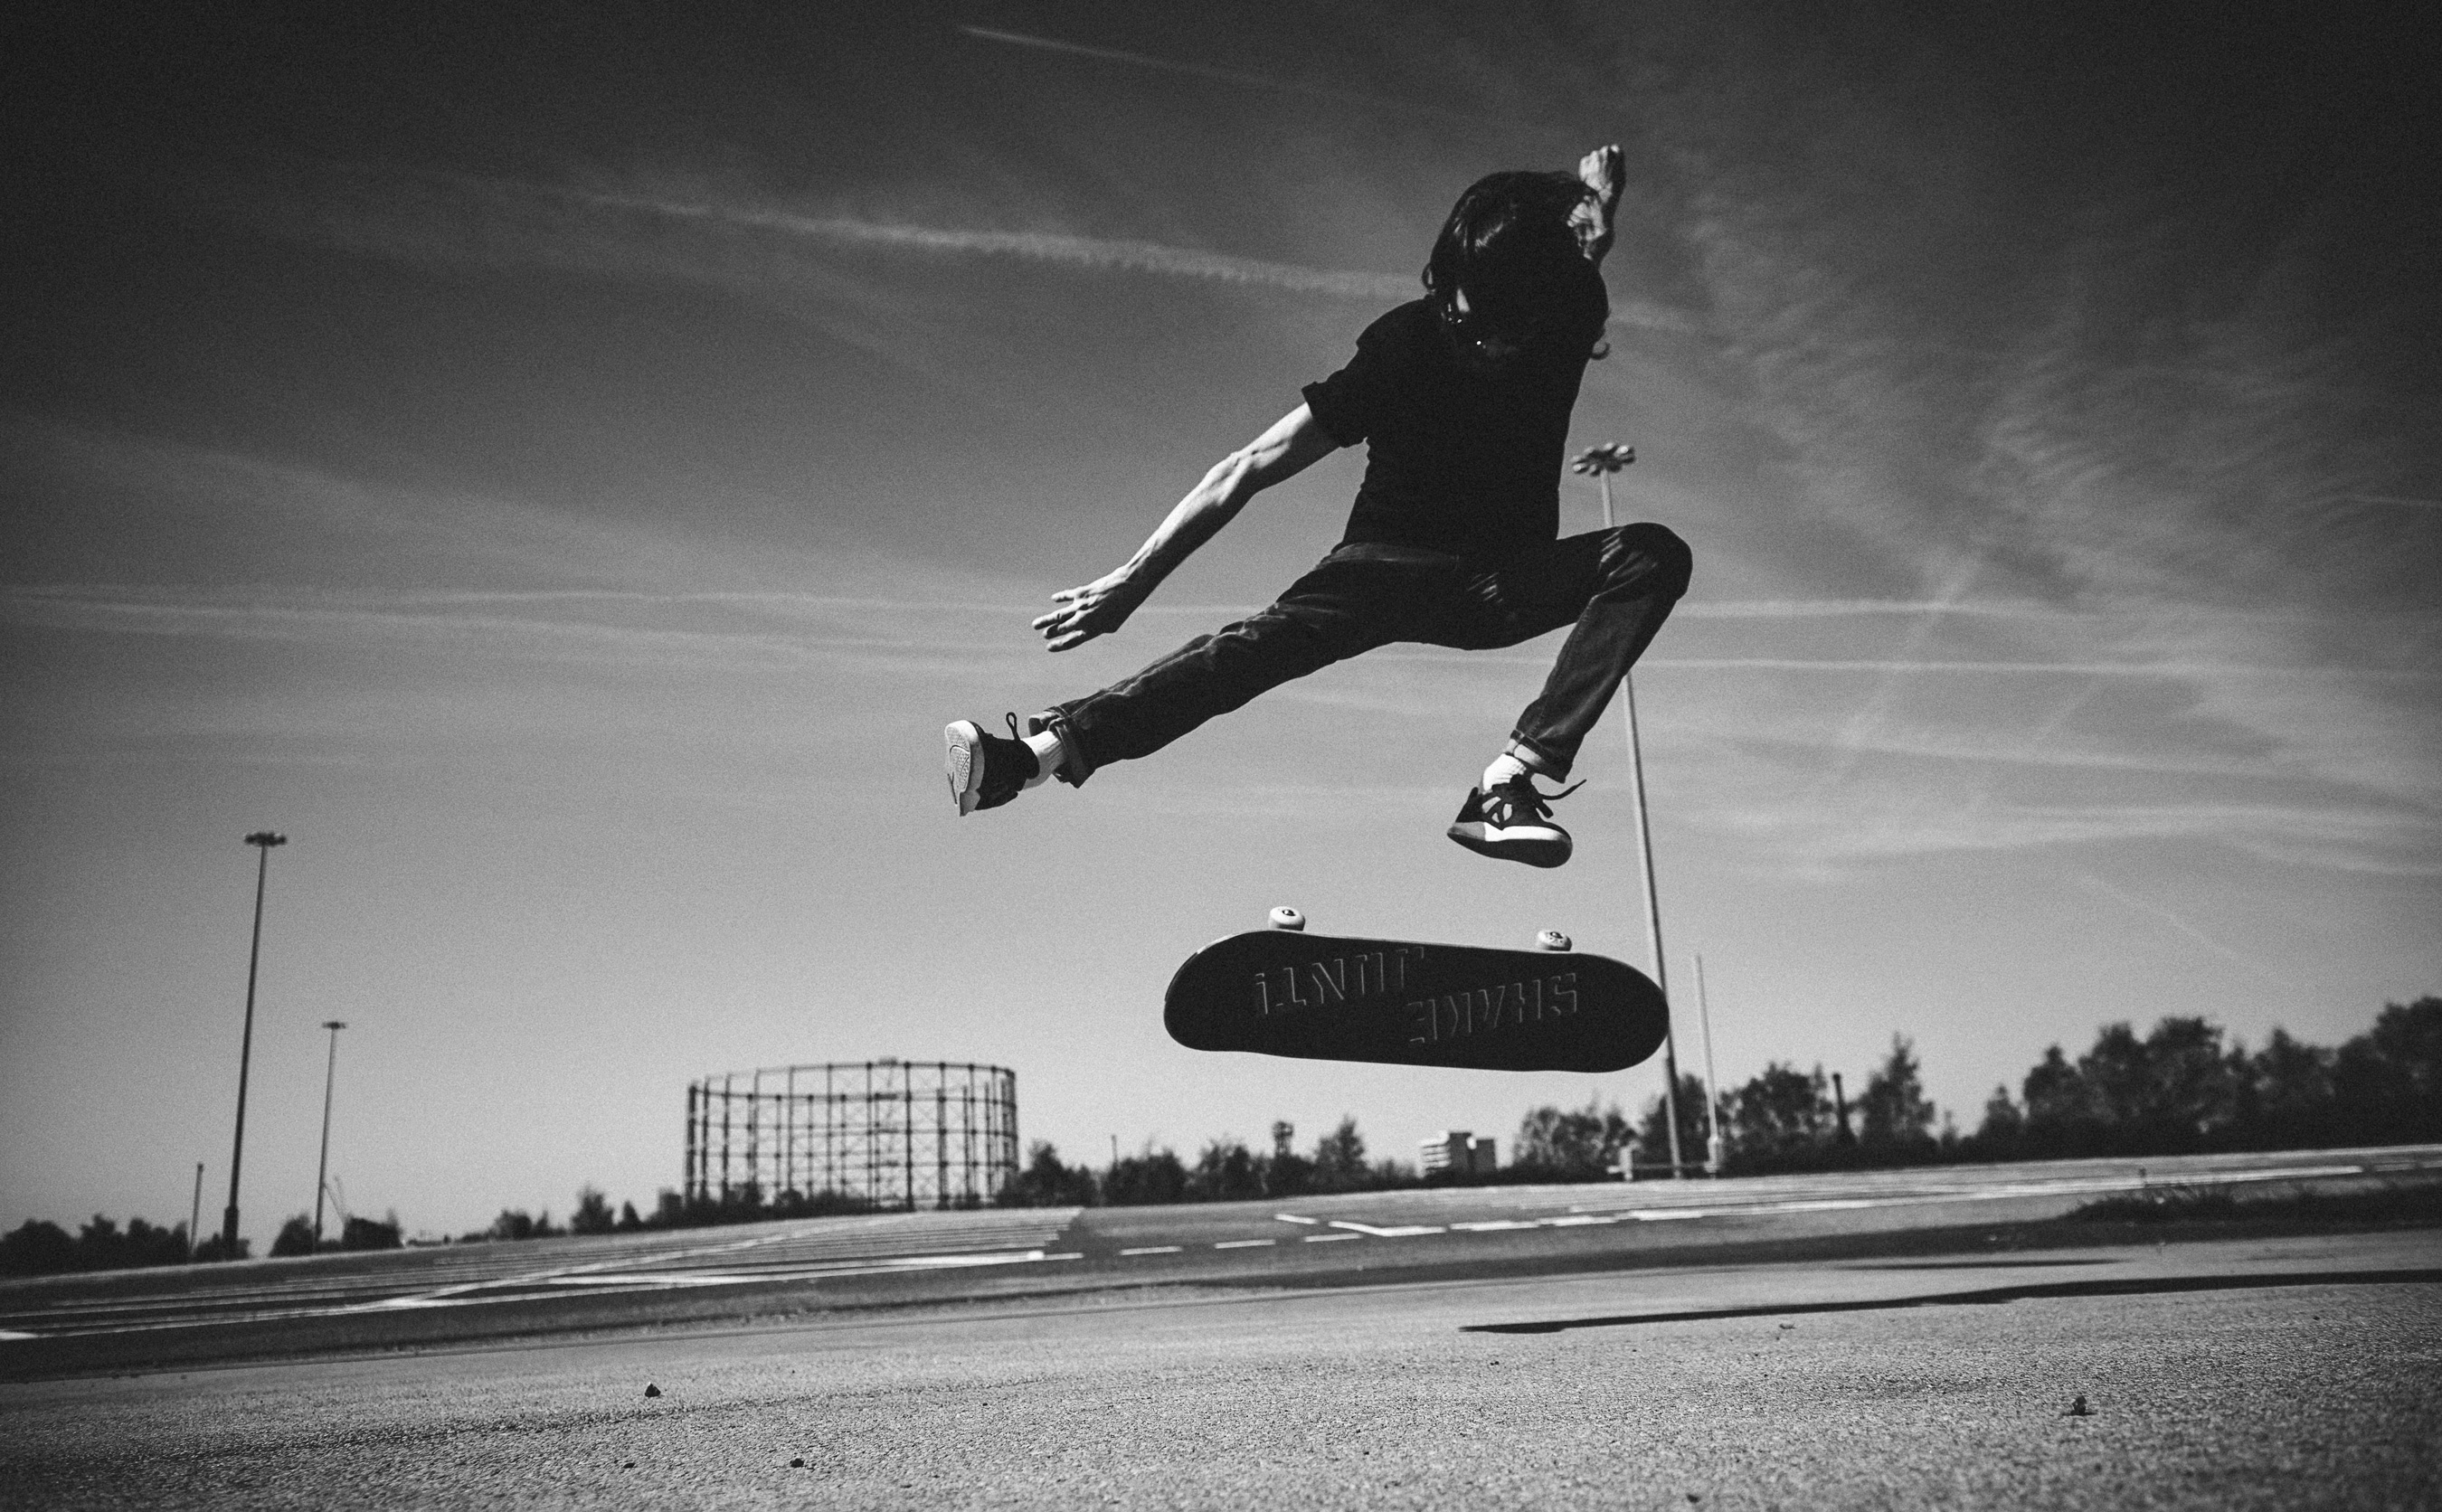 Matt-Stansfield-Photographer-lifestyle-ben-grove-skateboard-326